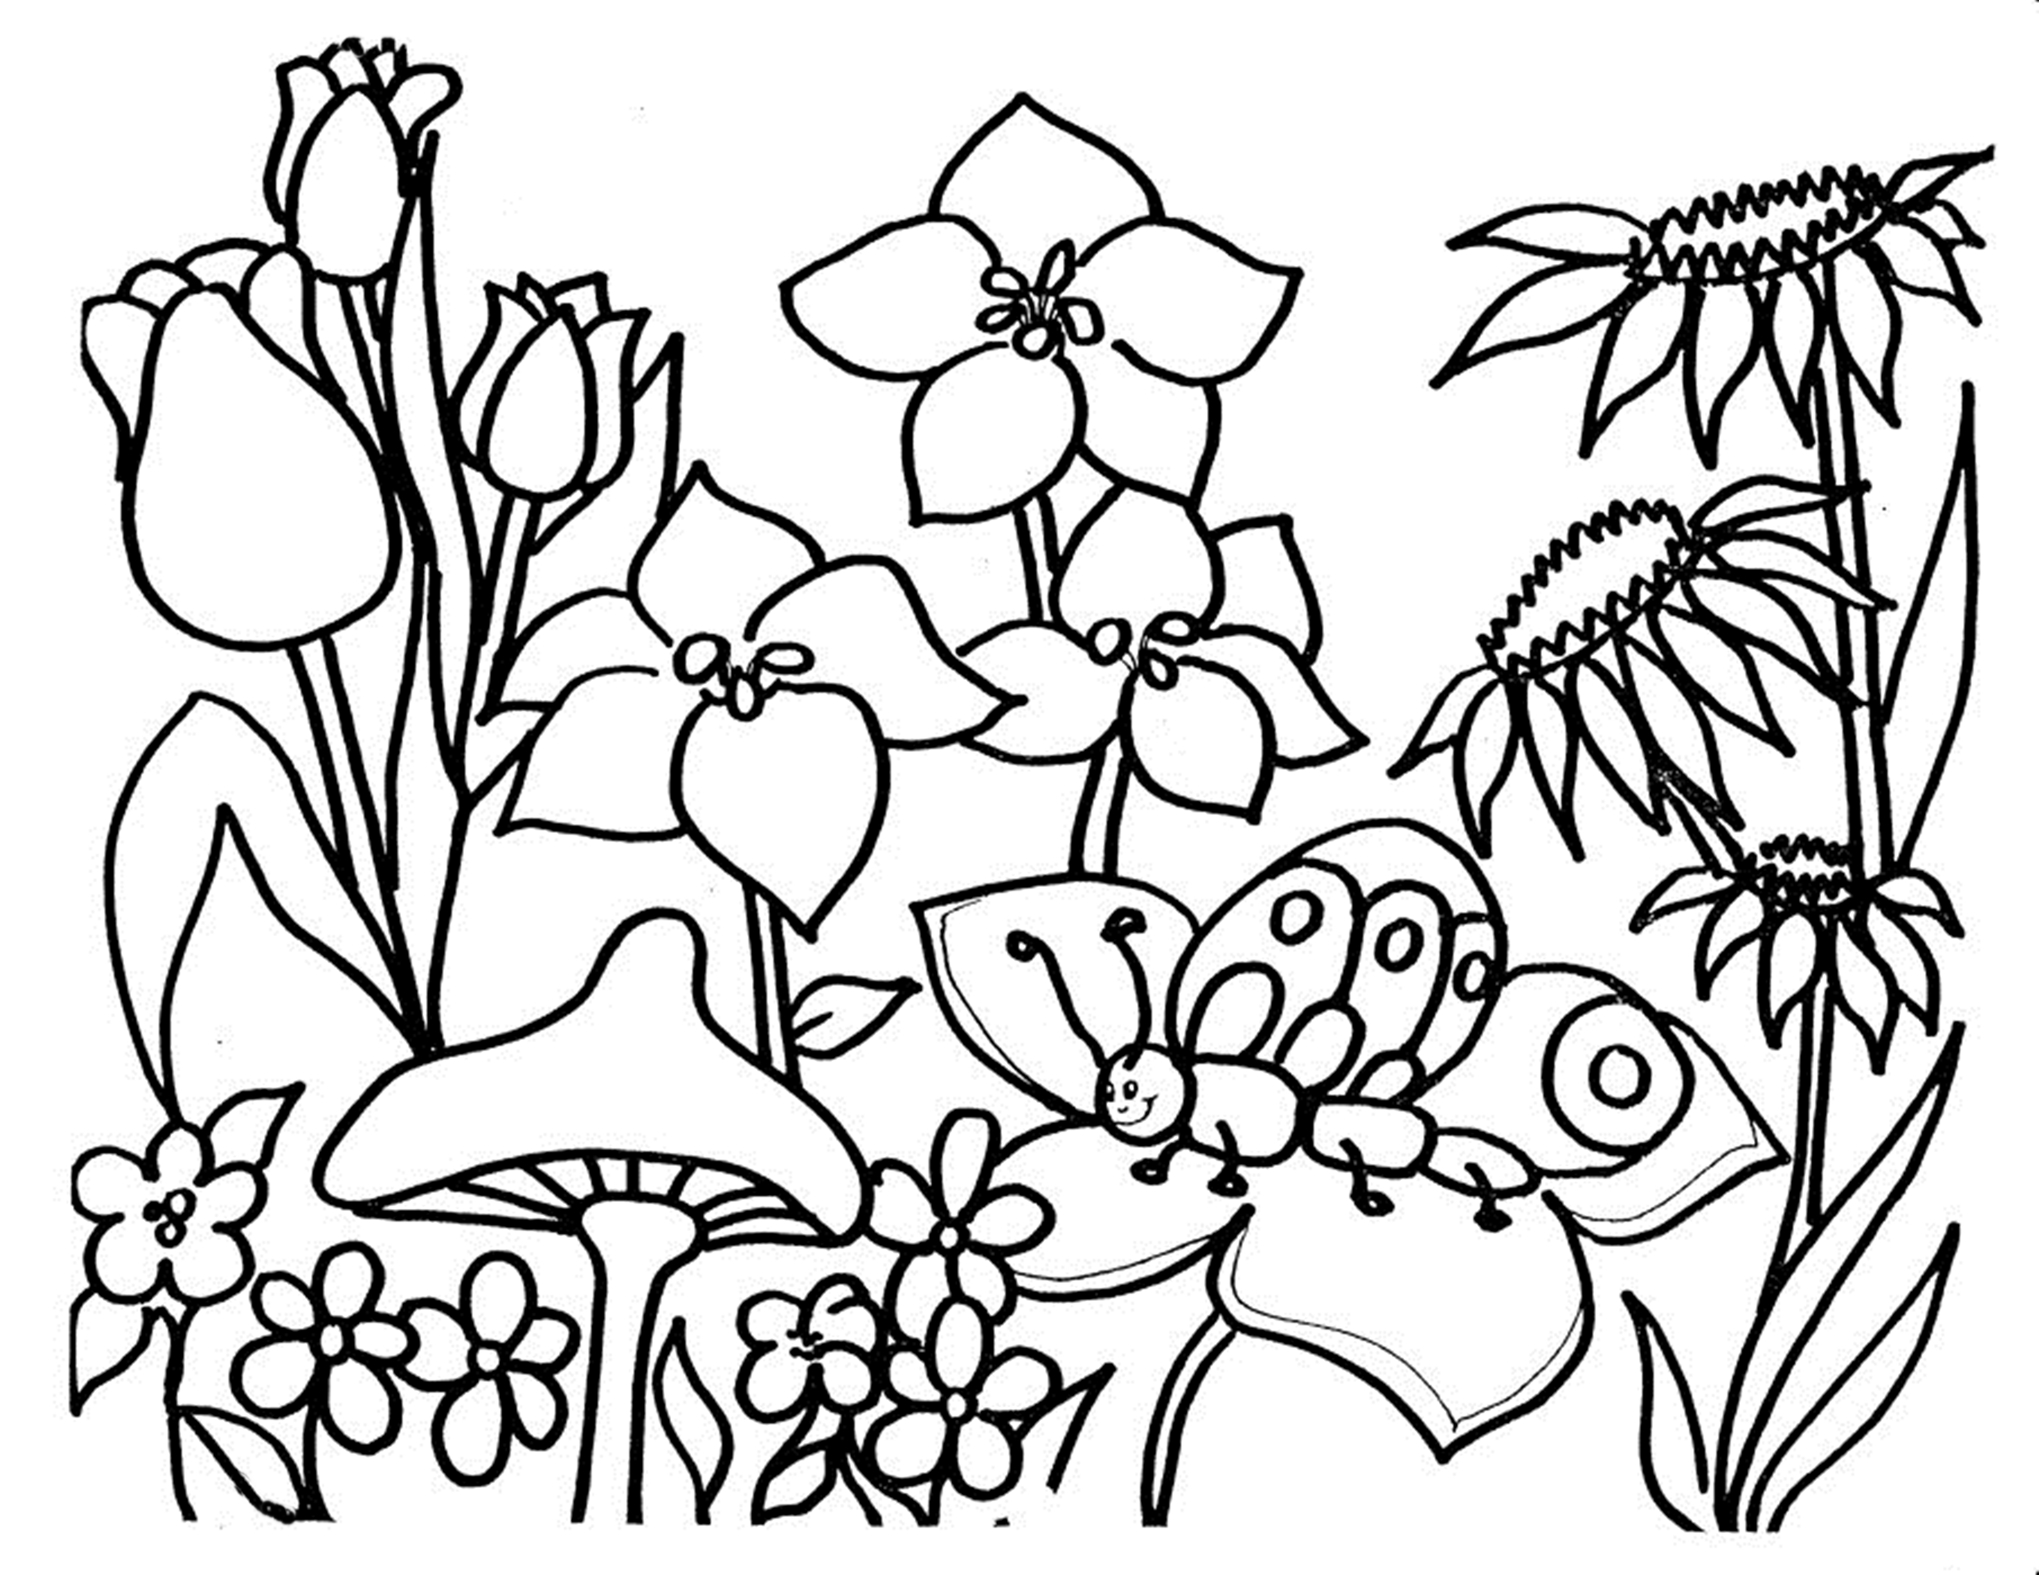 flower colouring pictures to print free online flower colouring page flower pictures colouring print to